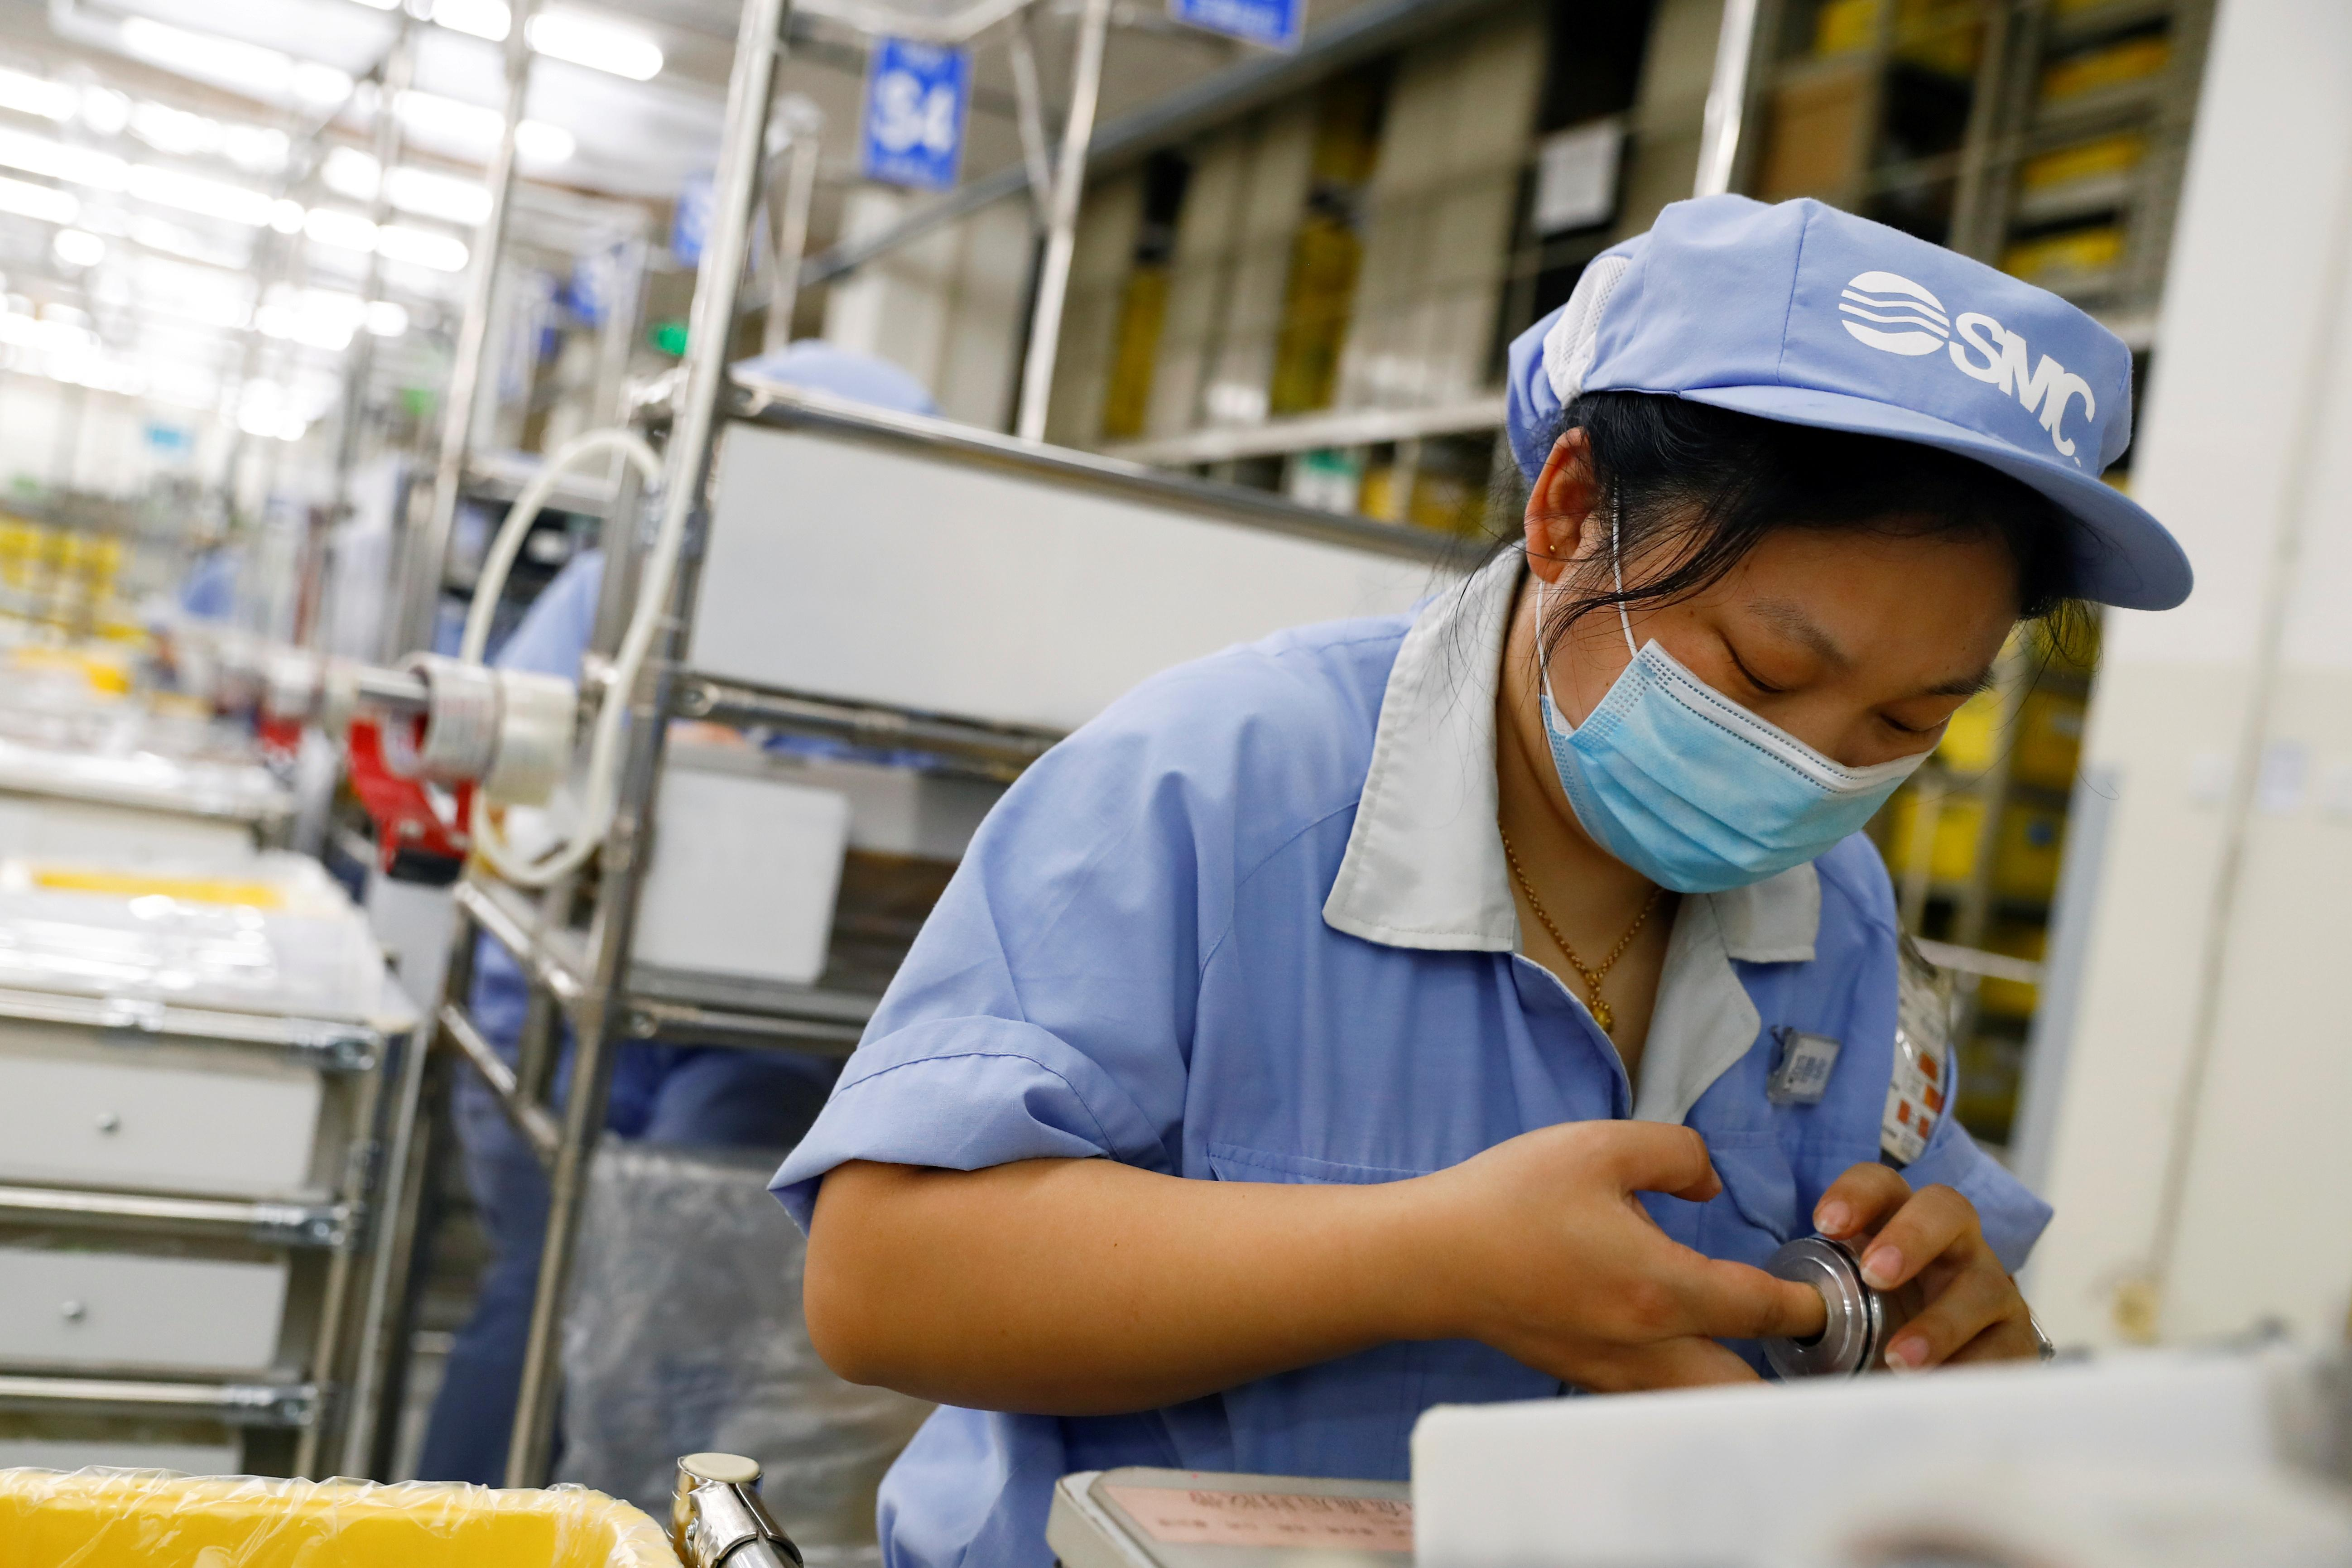 China says COVID-19 outbreaks will not lead to industrial shutdowns in north